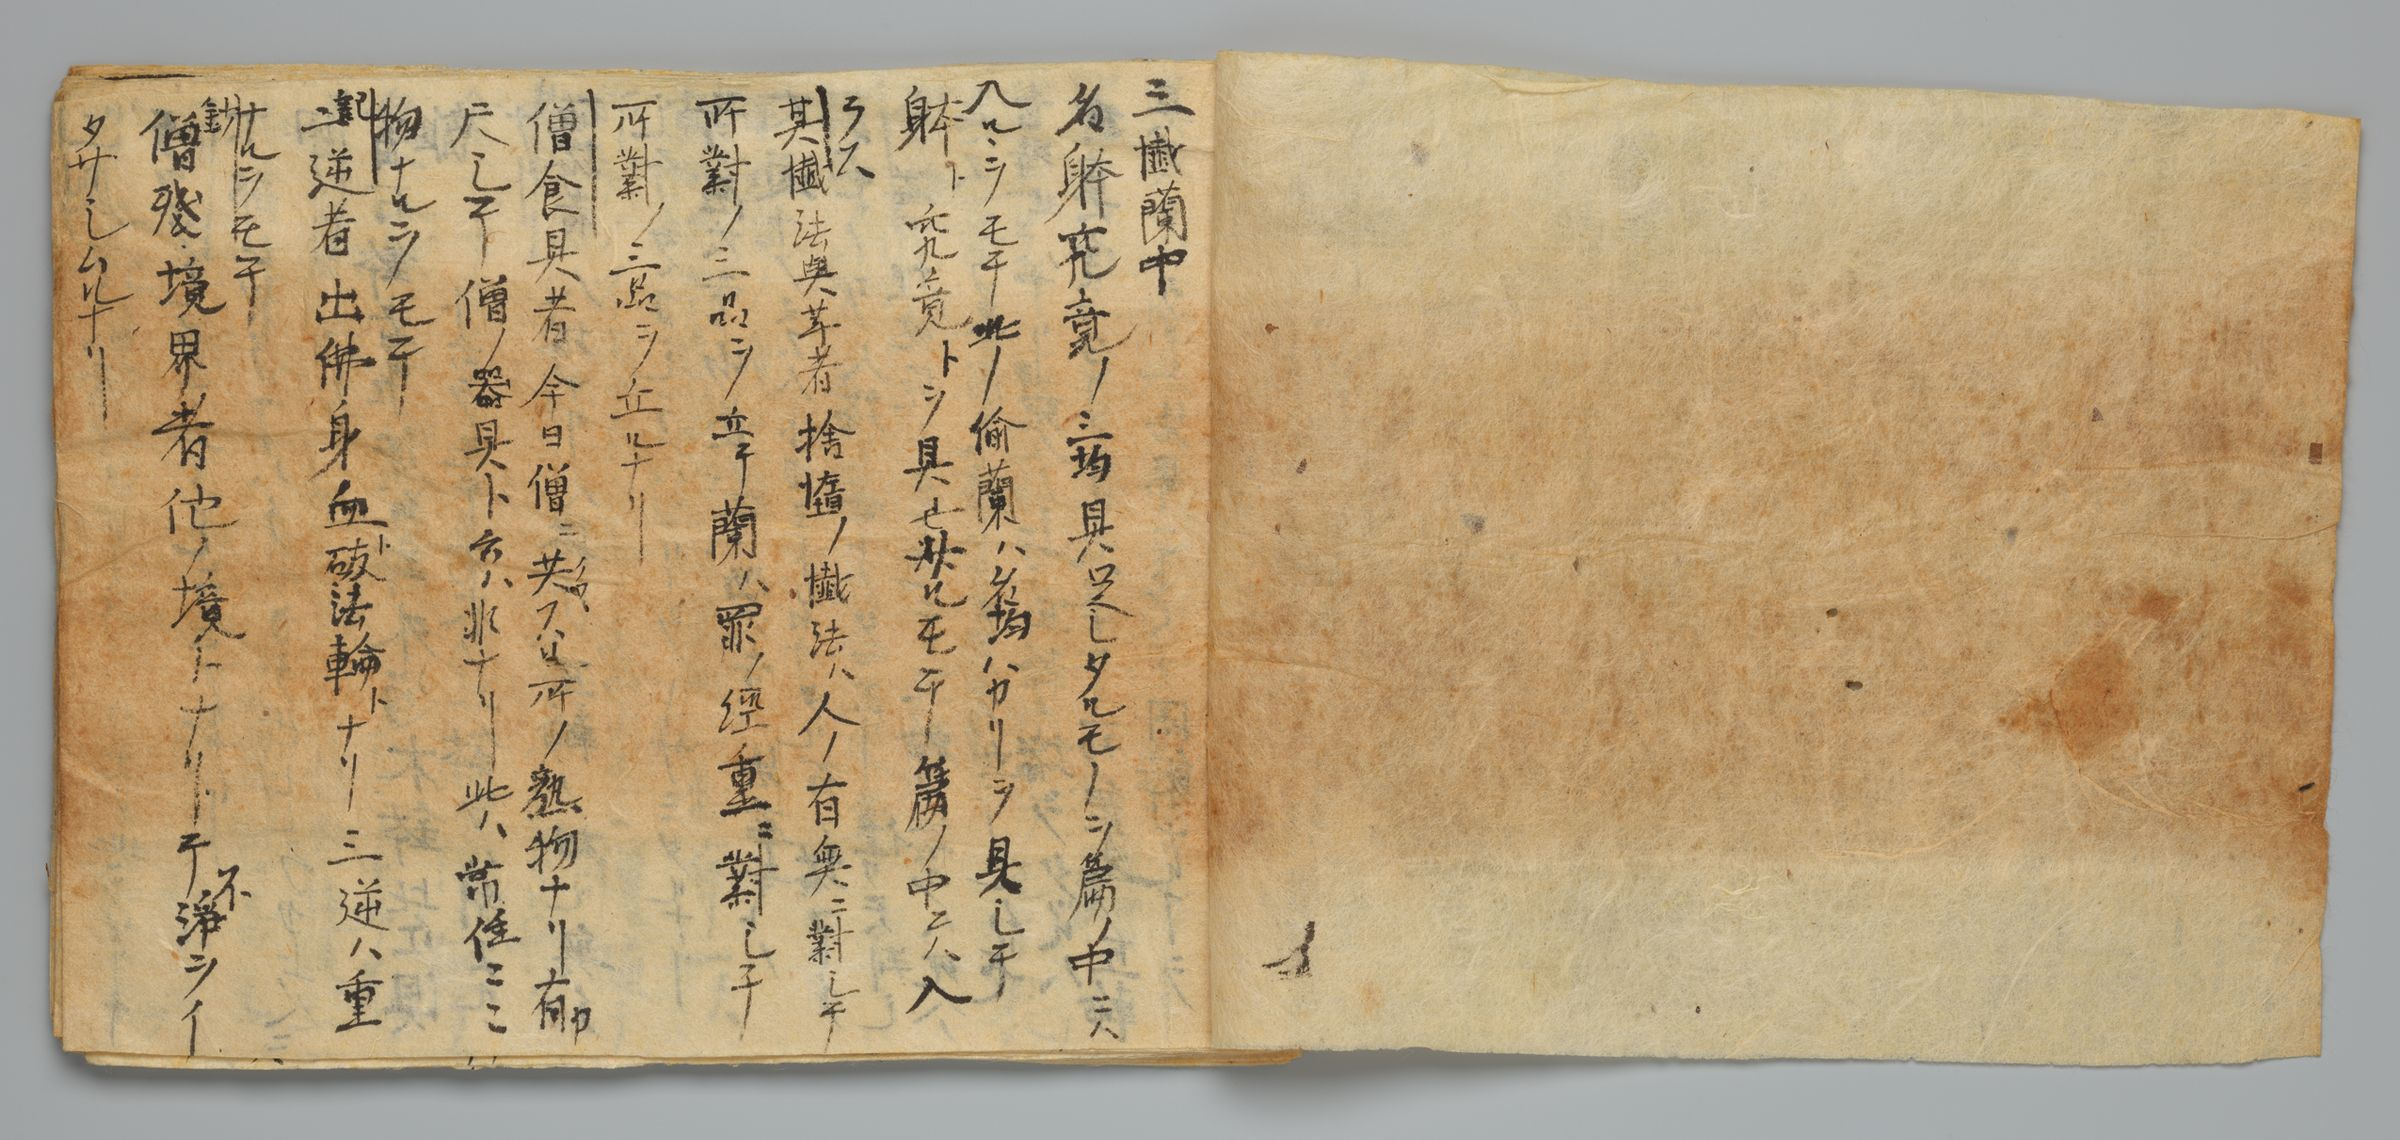 Text On The Buddhist Rite Of Repentance (San Senranchū)